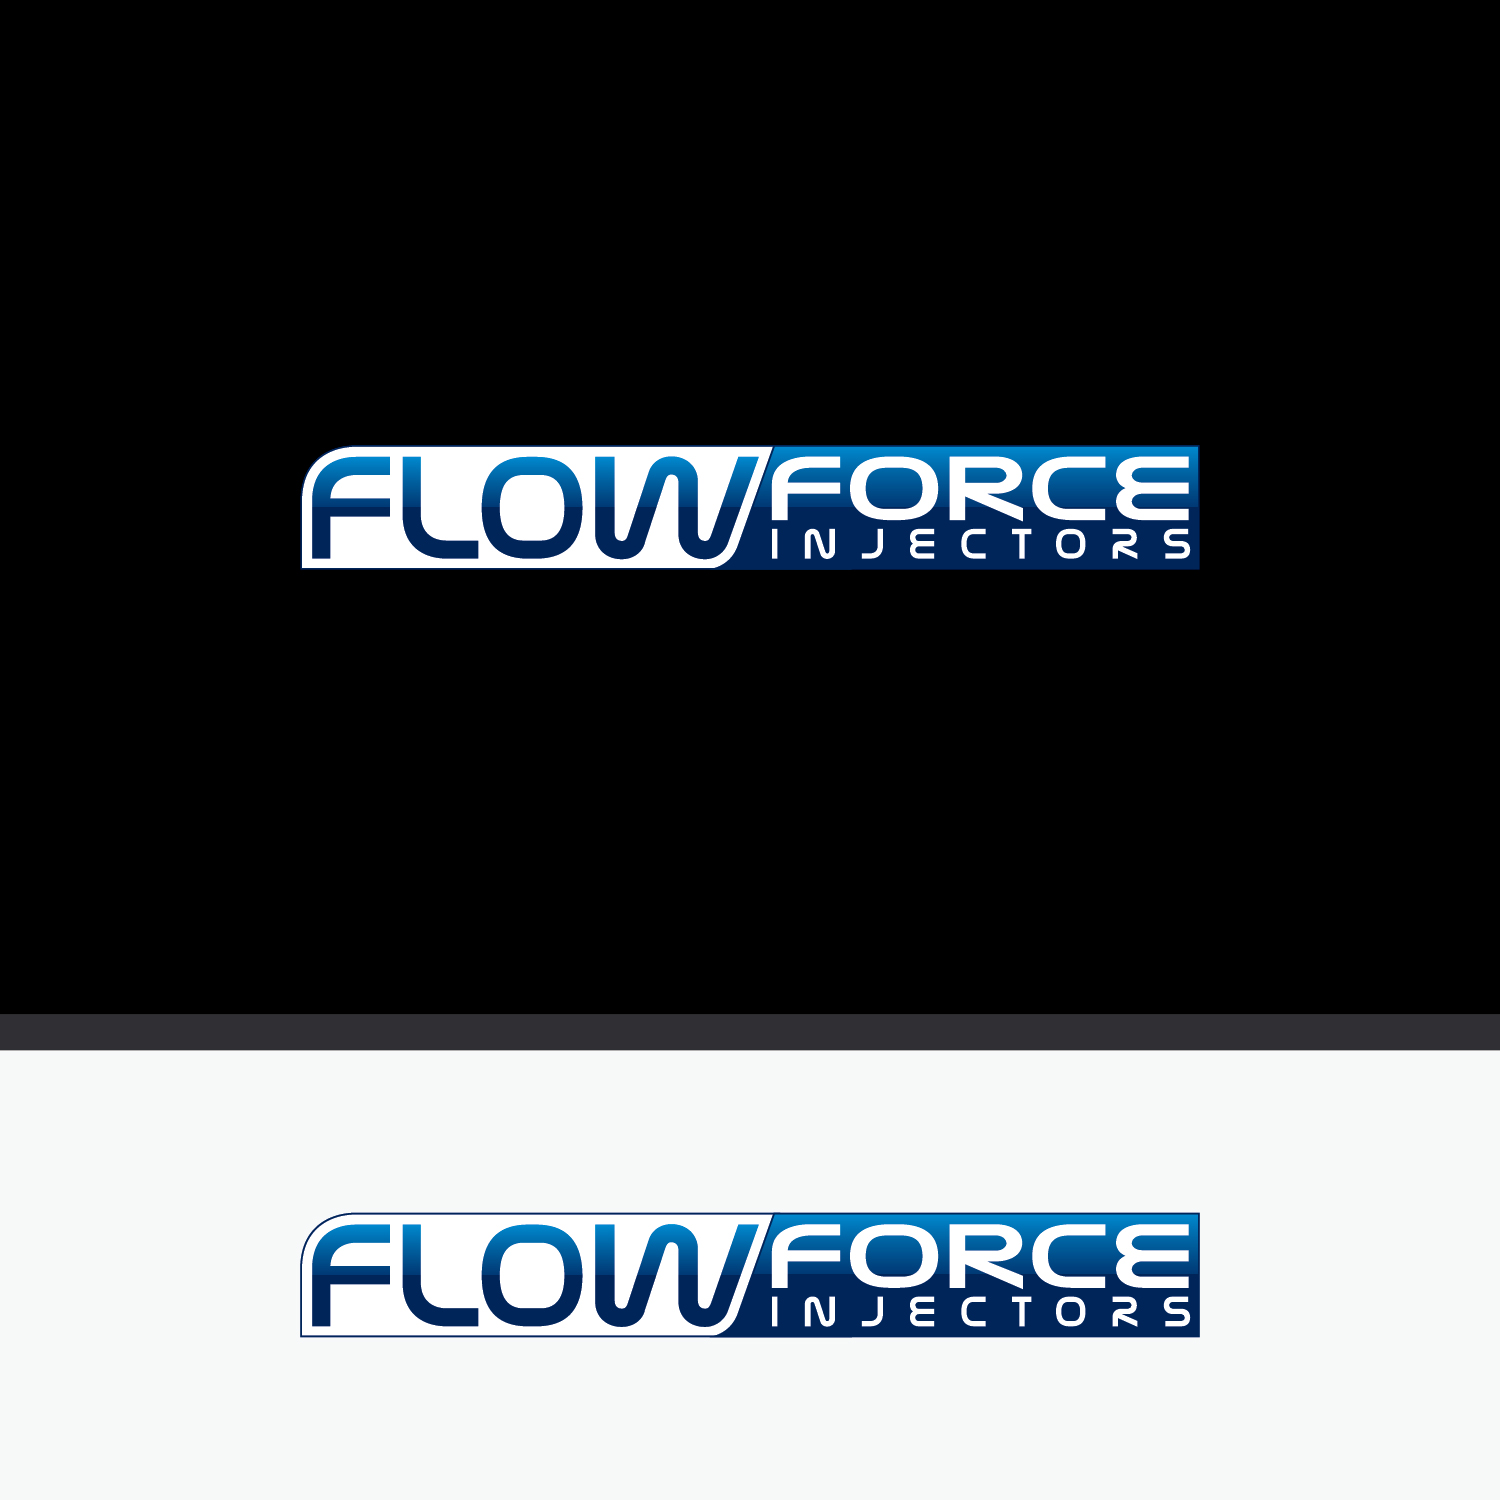 Logo Design by Shahab Uddin - Entry No. 143 in the Logo Design Contest Fun Logo Design for Flow Force Injectors.